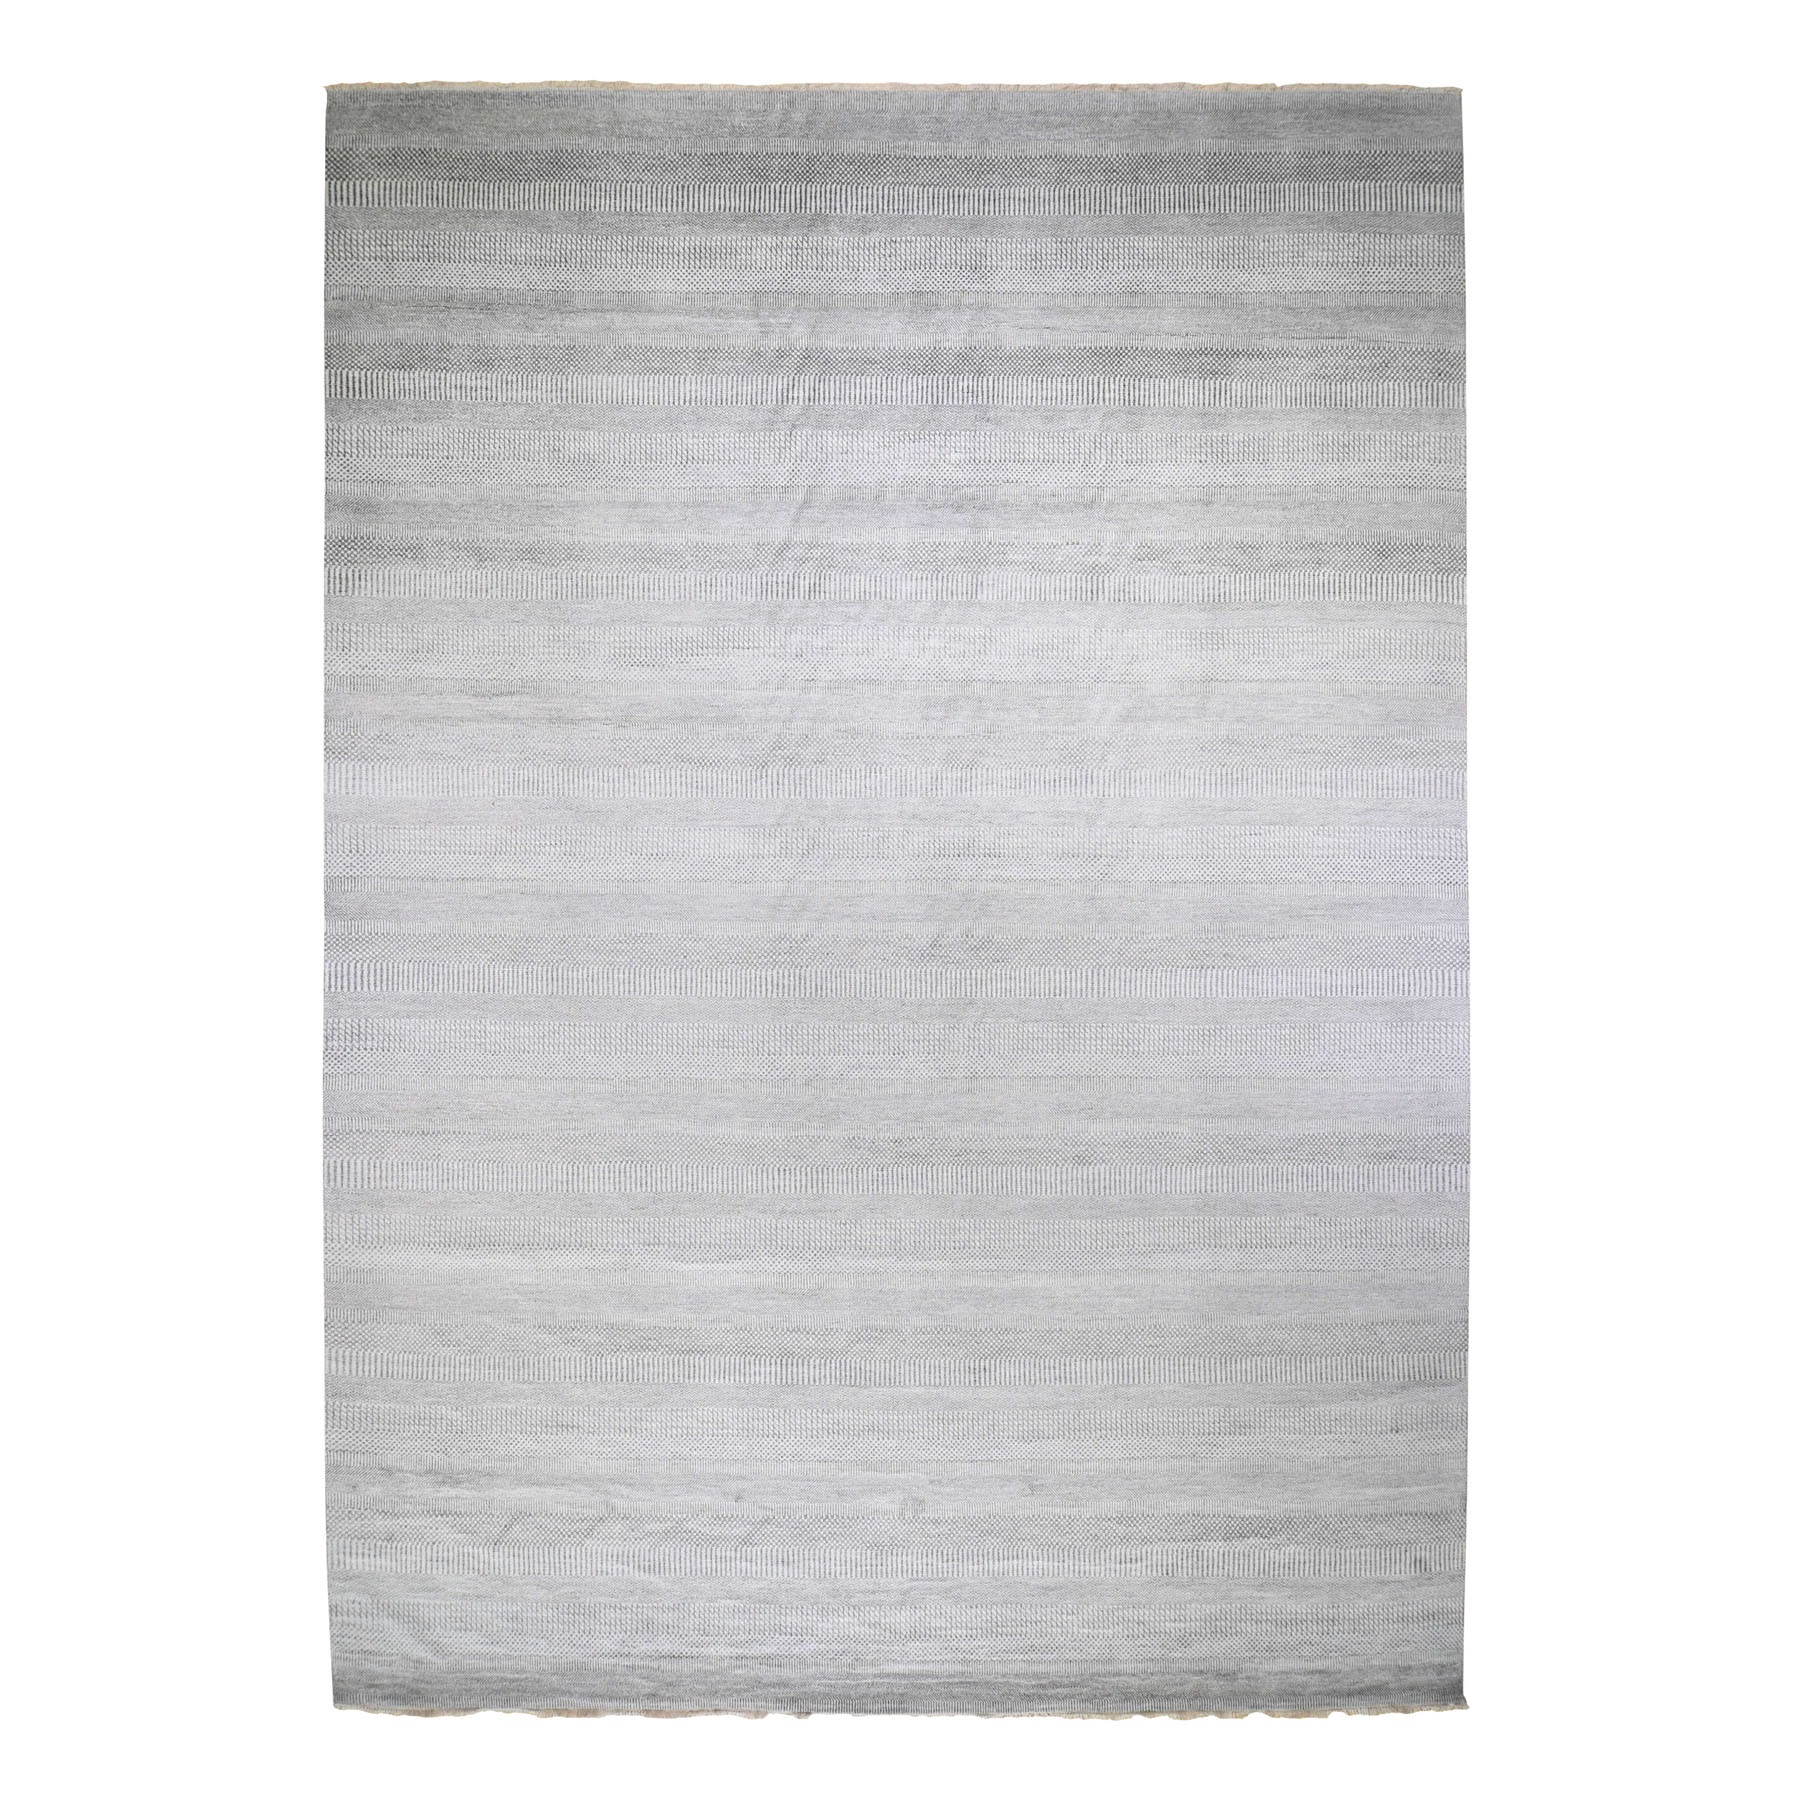 12'x18' Oversized Gray Grass Design Wool And Silk Hand Knotted Oriental Rug